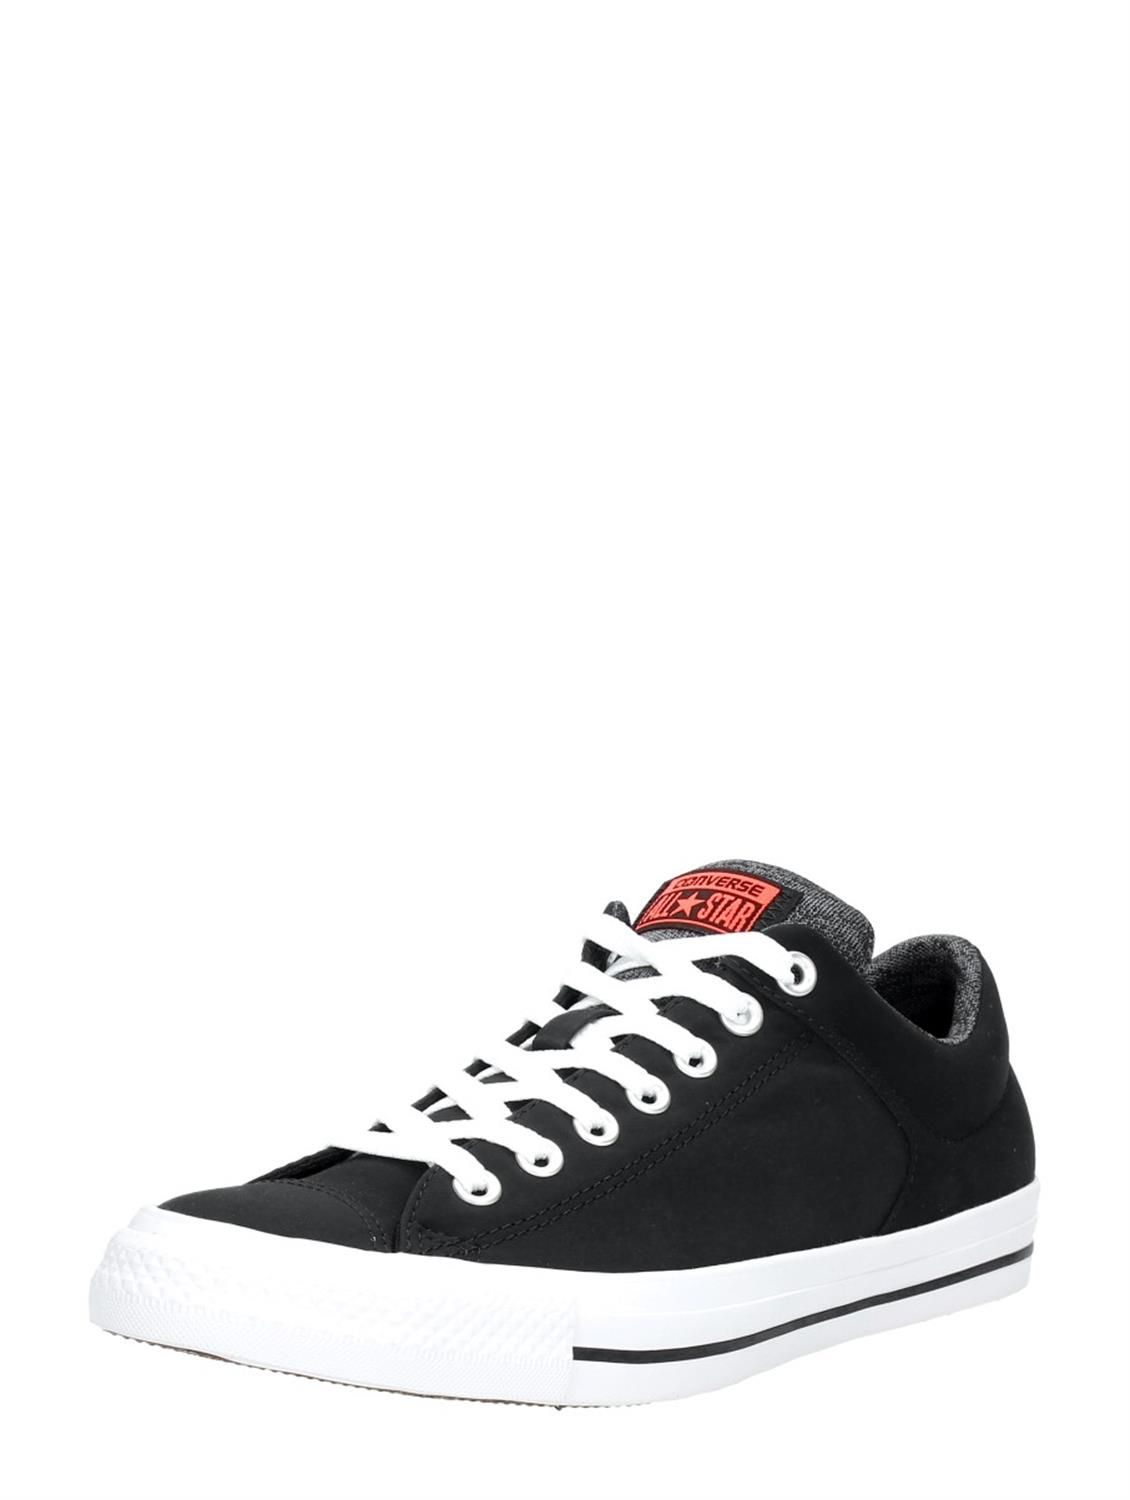 Converse All Star high street laag zwart heren | Converse ...